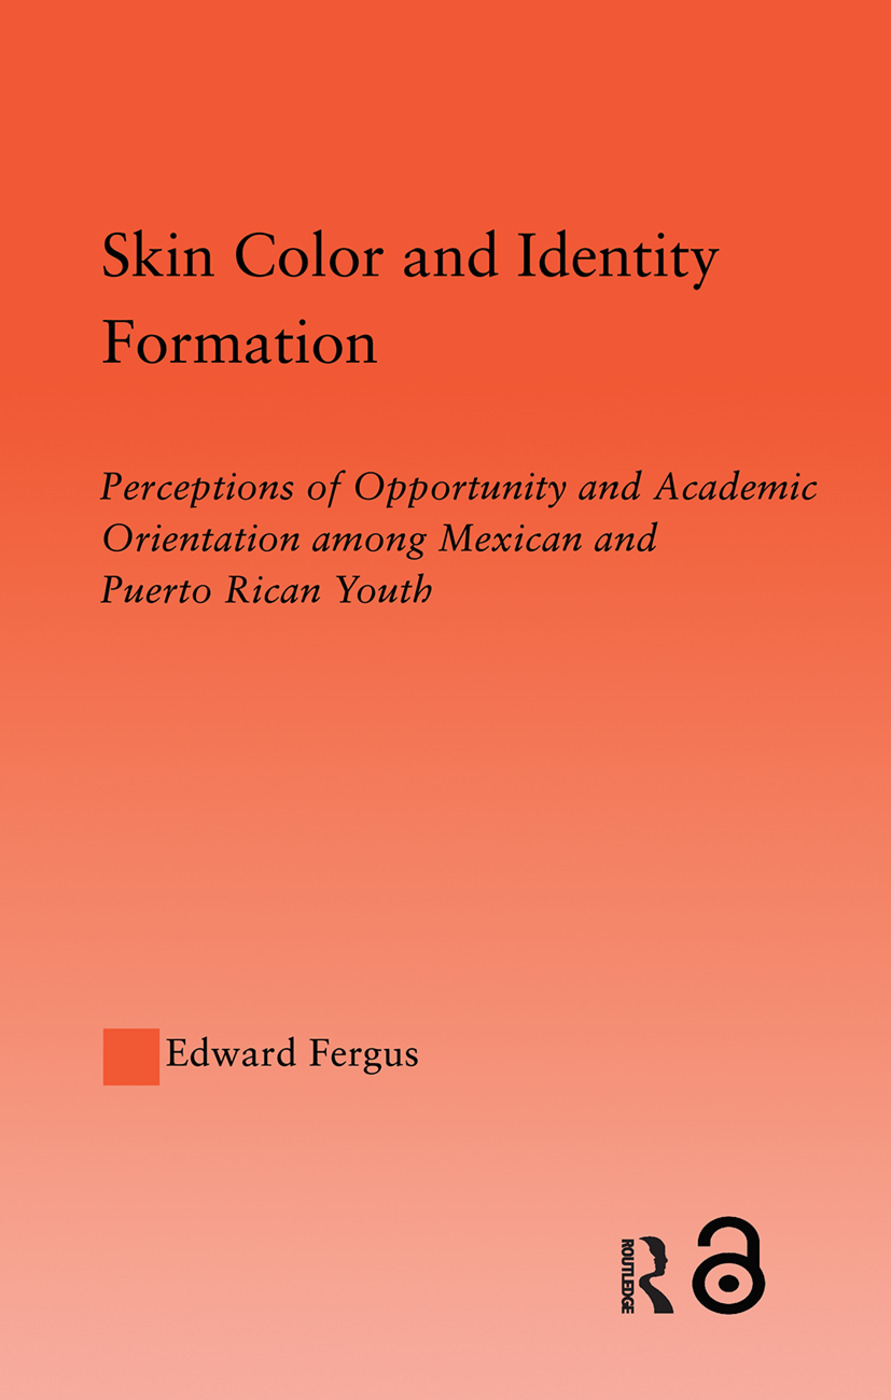 Skin Color and Identity Formation: Perception of Opportunity and Academic Orientation Among Mexican and Puerto Rican Youth (Paperback) book cover